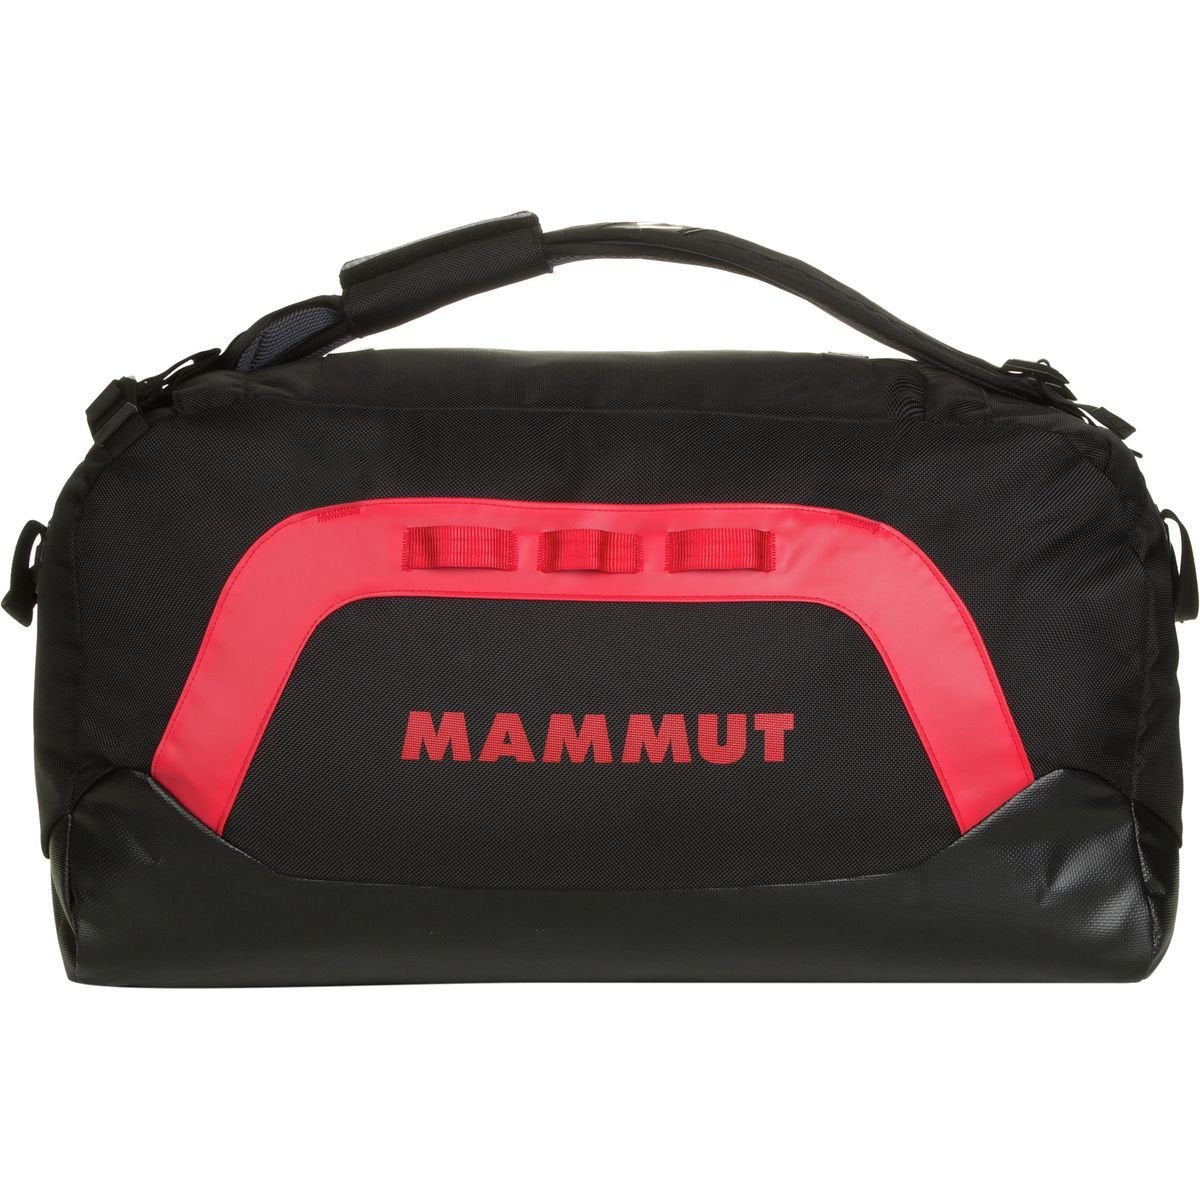 Mammut Cargon Holdall 40L, shown in carry mode in red/black colours